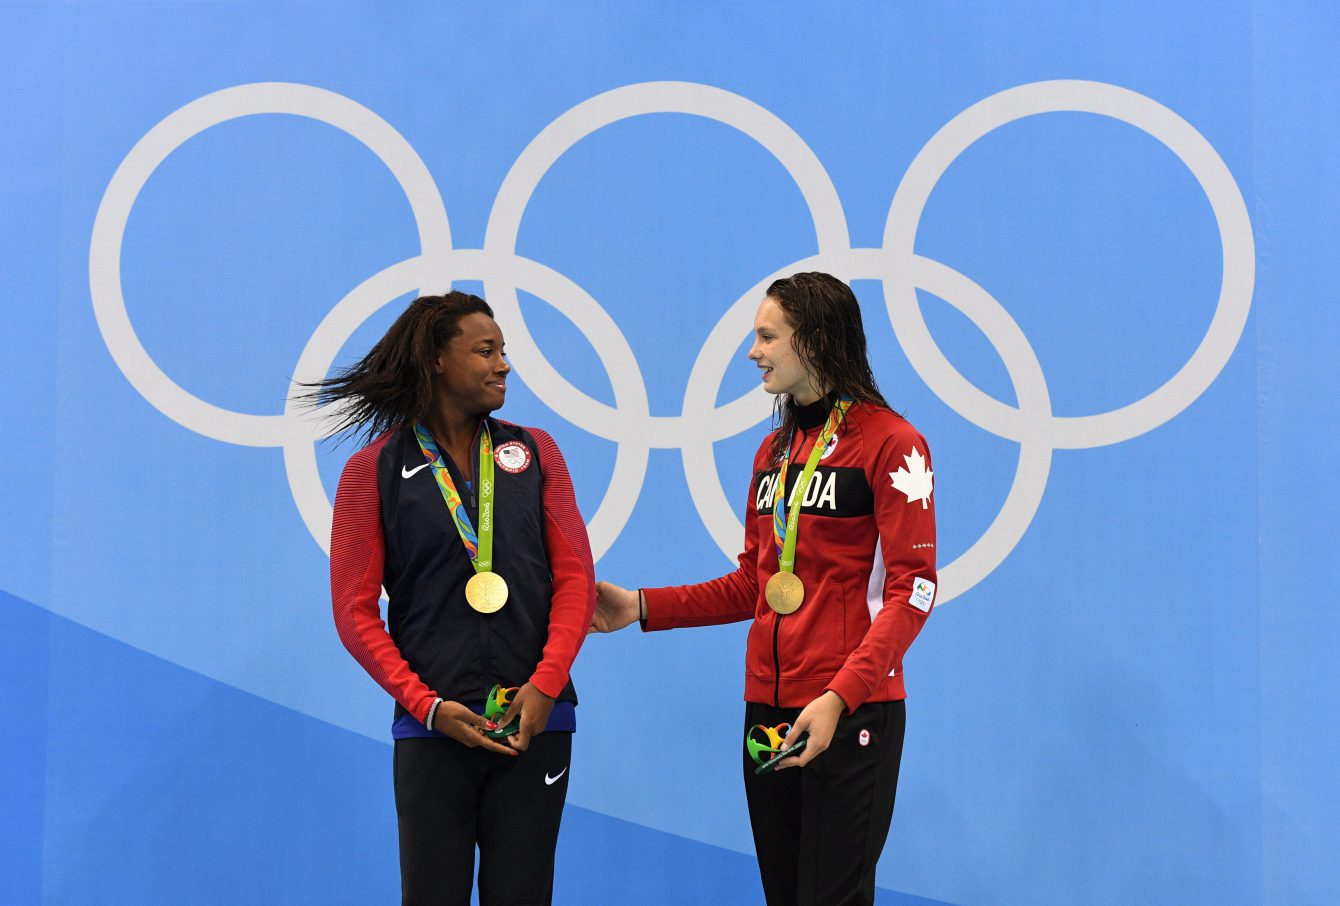 Canada's Penny Oleksiak and the United States' Simone Manuel celebrate their tie for gold in the women's 100m freestyle finals during the 2016 Olympic Summer Games in Rio de Janeiro, Brazil, on Friday, Aug. 12, 2016. THE CANADIAN PRESS/Sean Kilpatrick